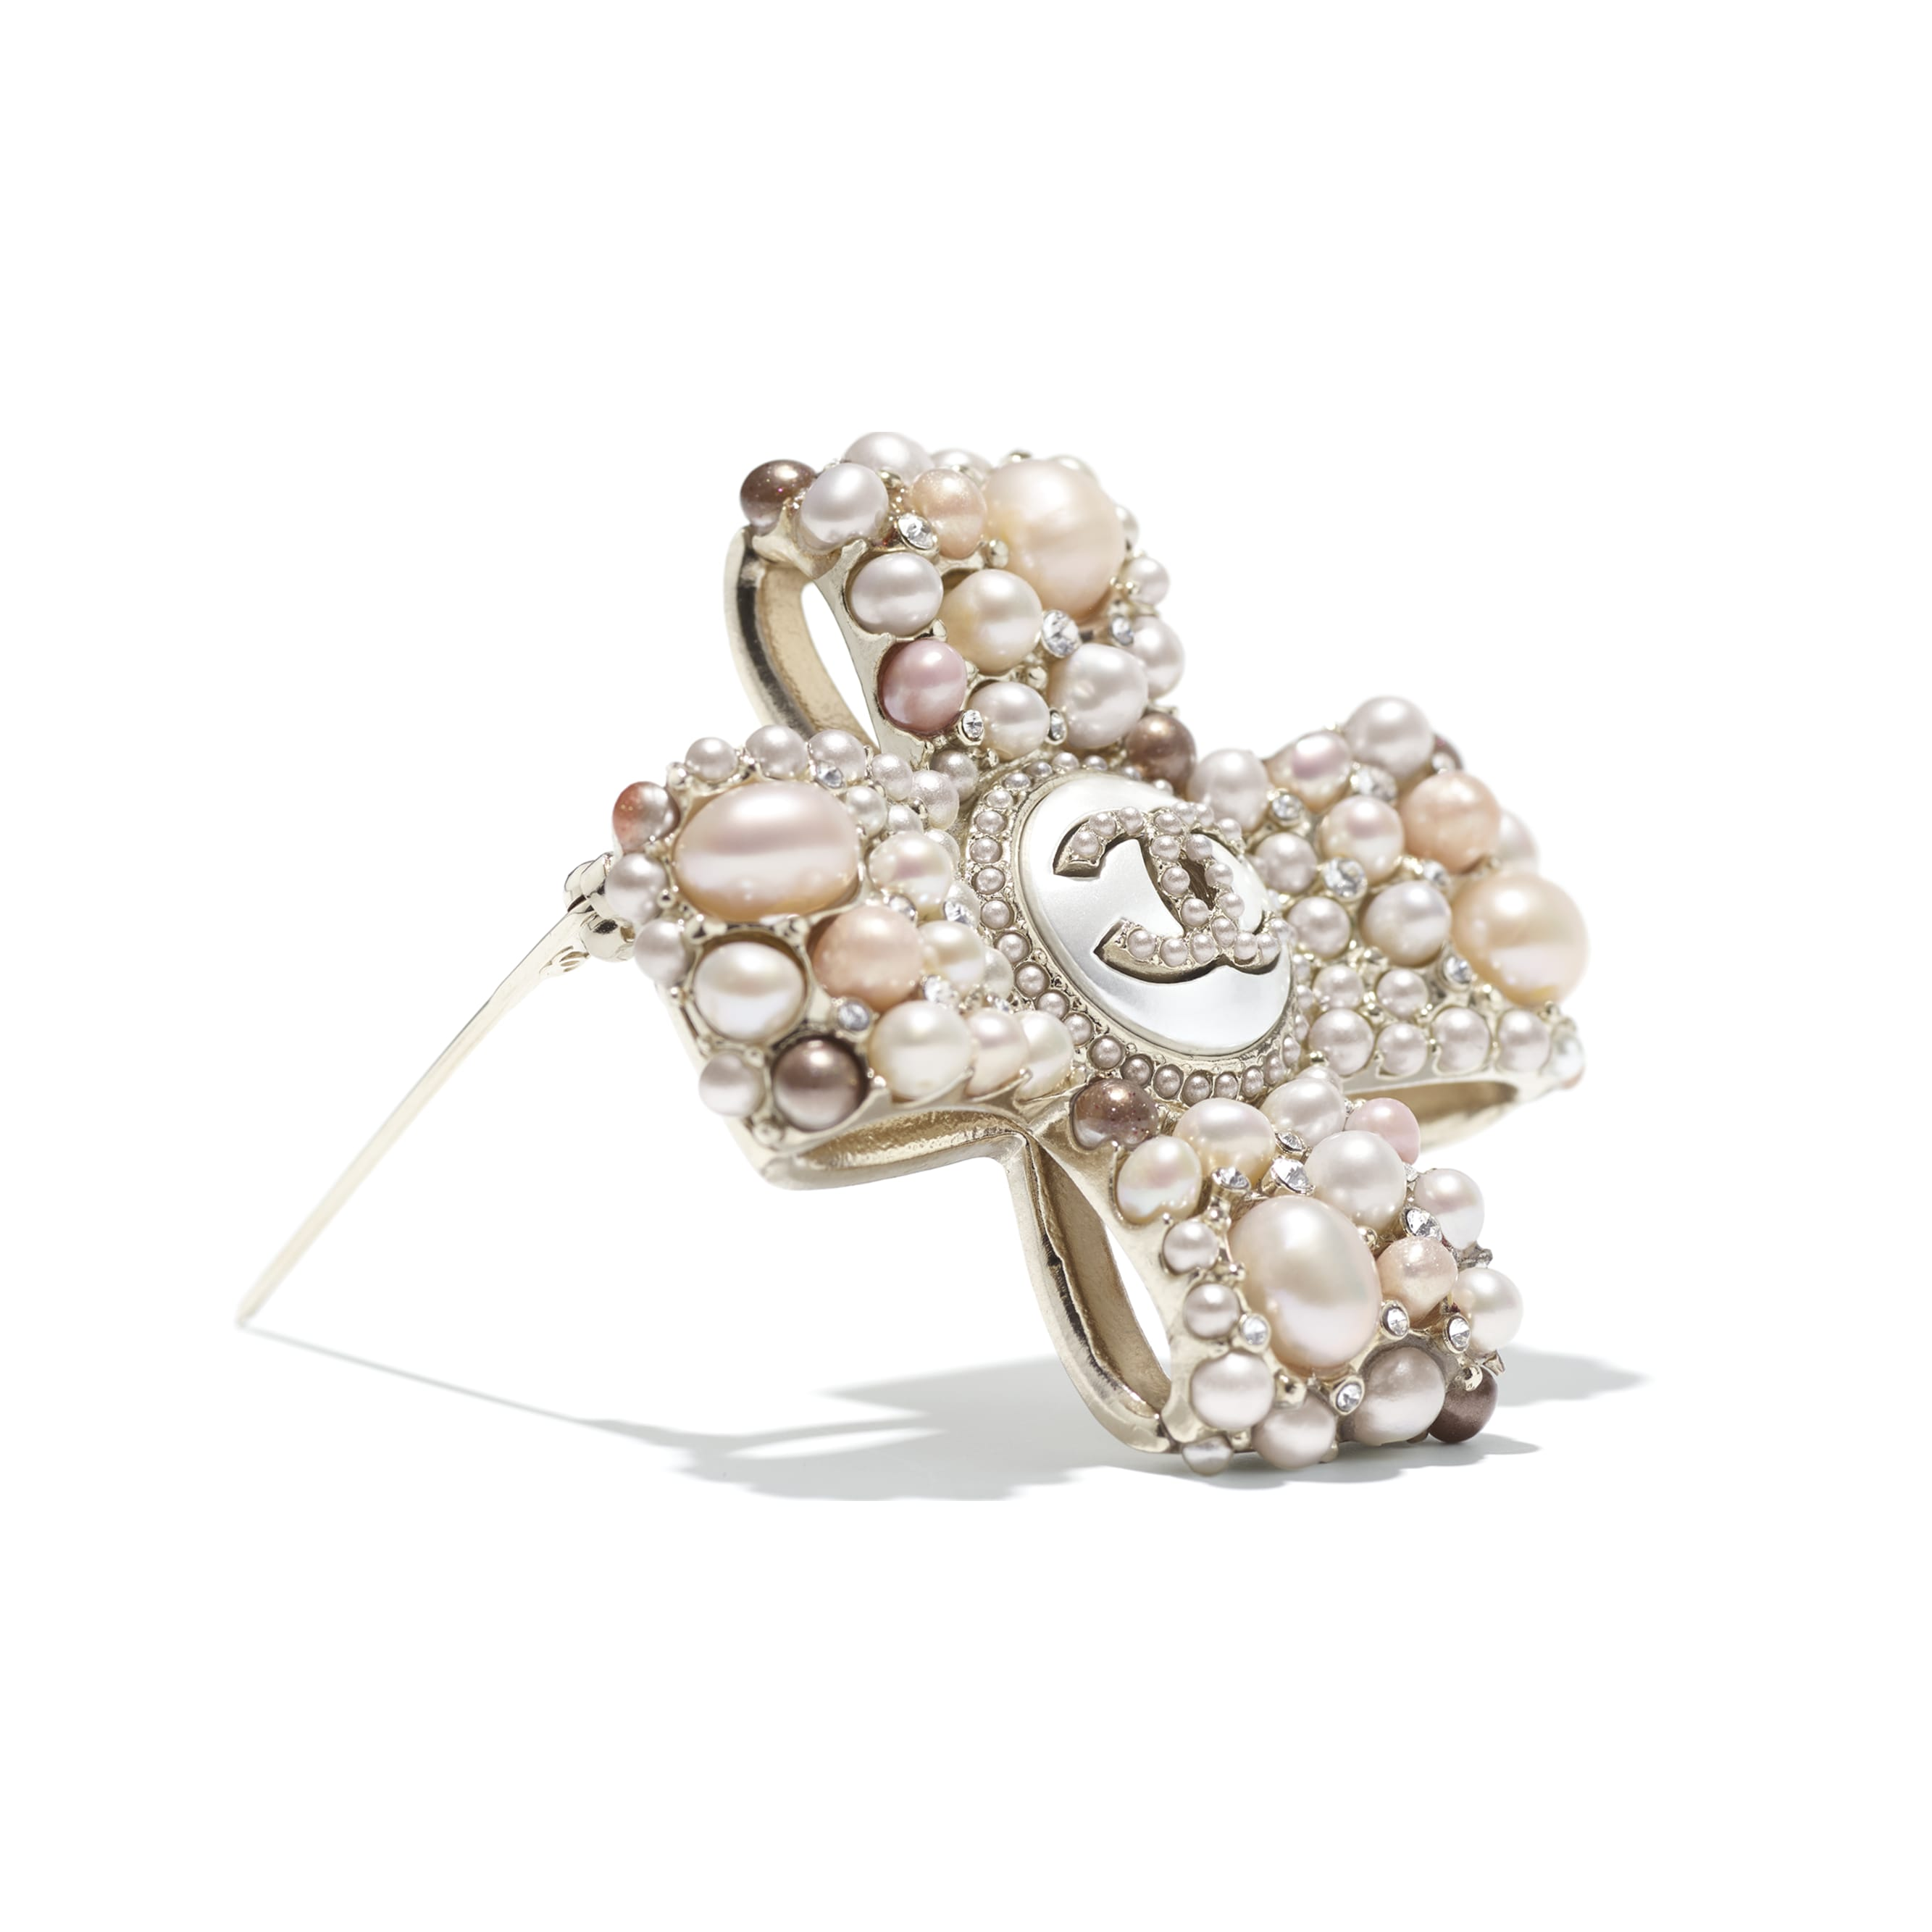 Brooch - Gold, Pearly White, Pink & Crystal - Metal, Cultured Freshwater Pearls, Glass Pearls & Strass - CHANEL - Alternative view - see standard sized version